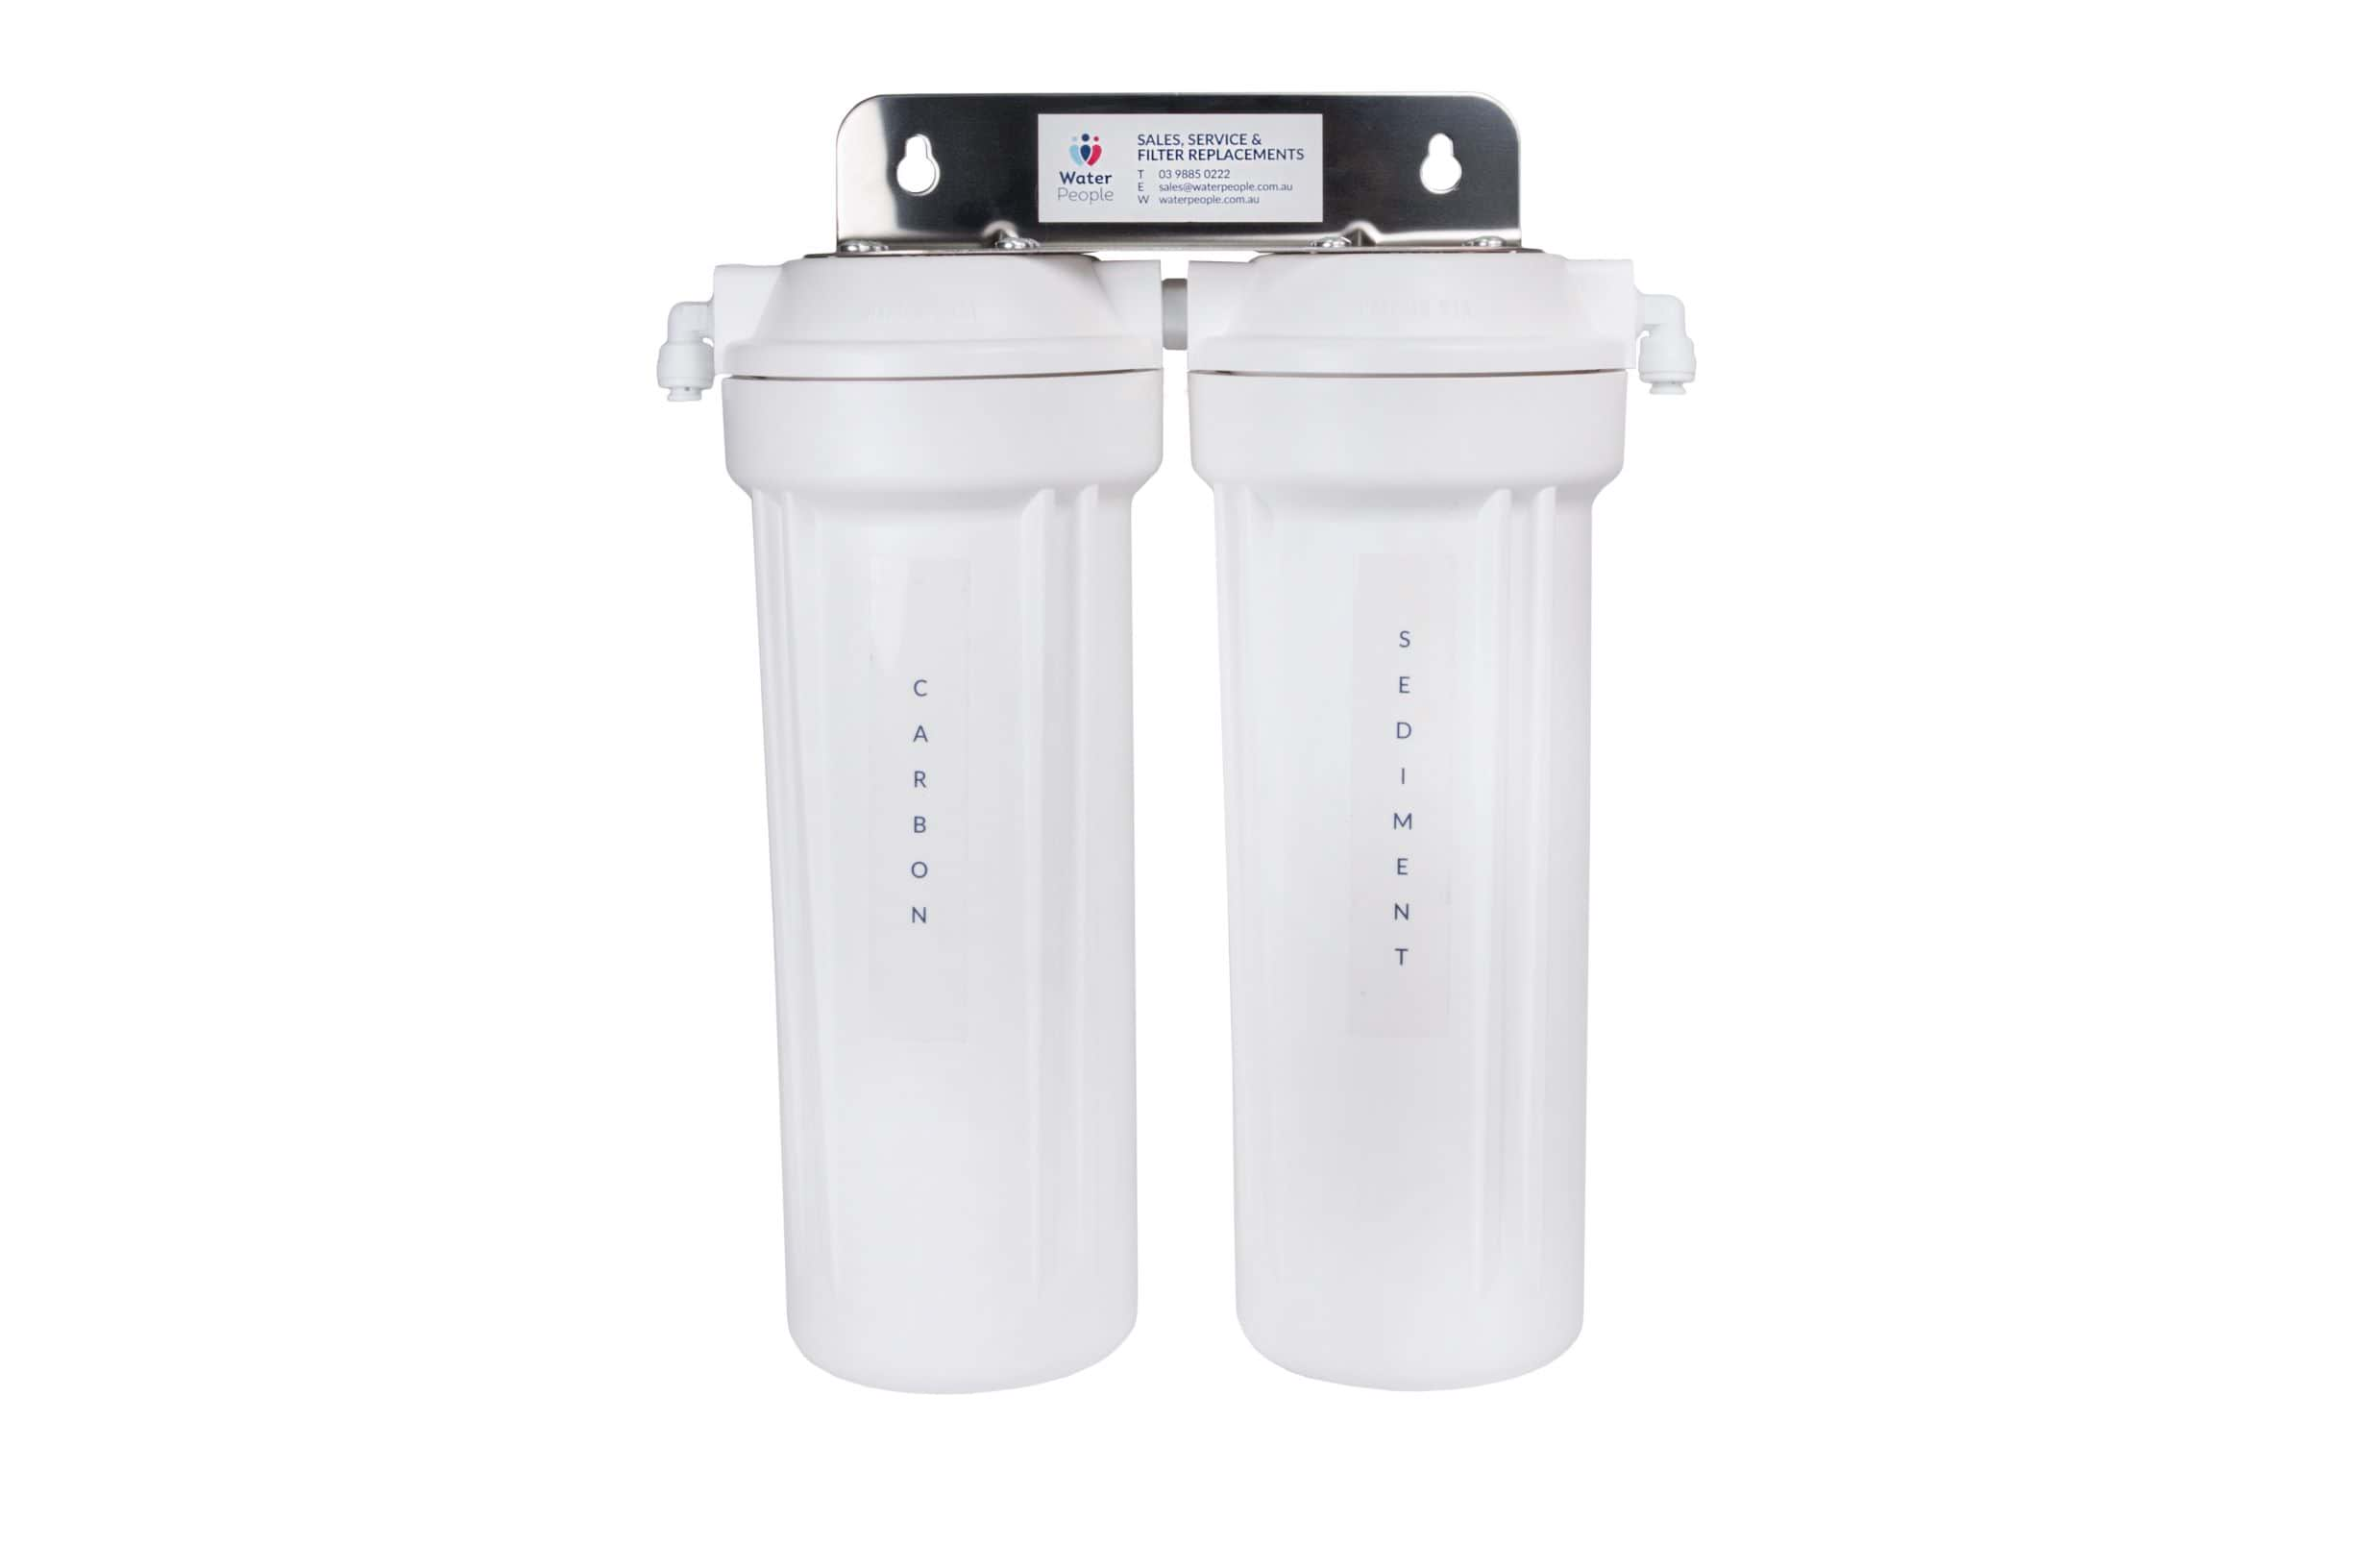 Aquakleen Twin Chlorine Plus Water Filter System